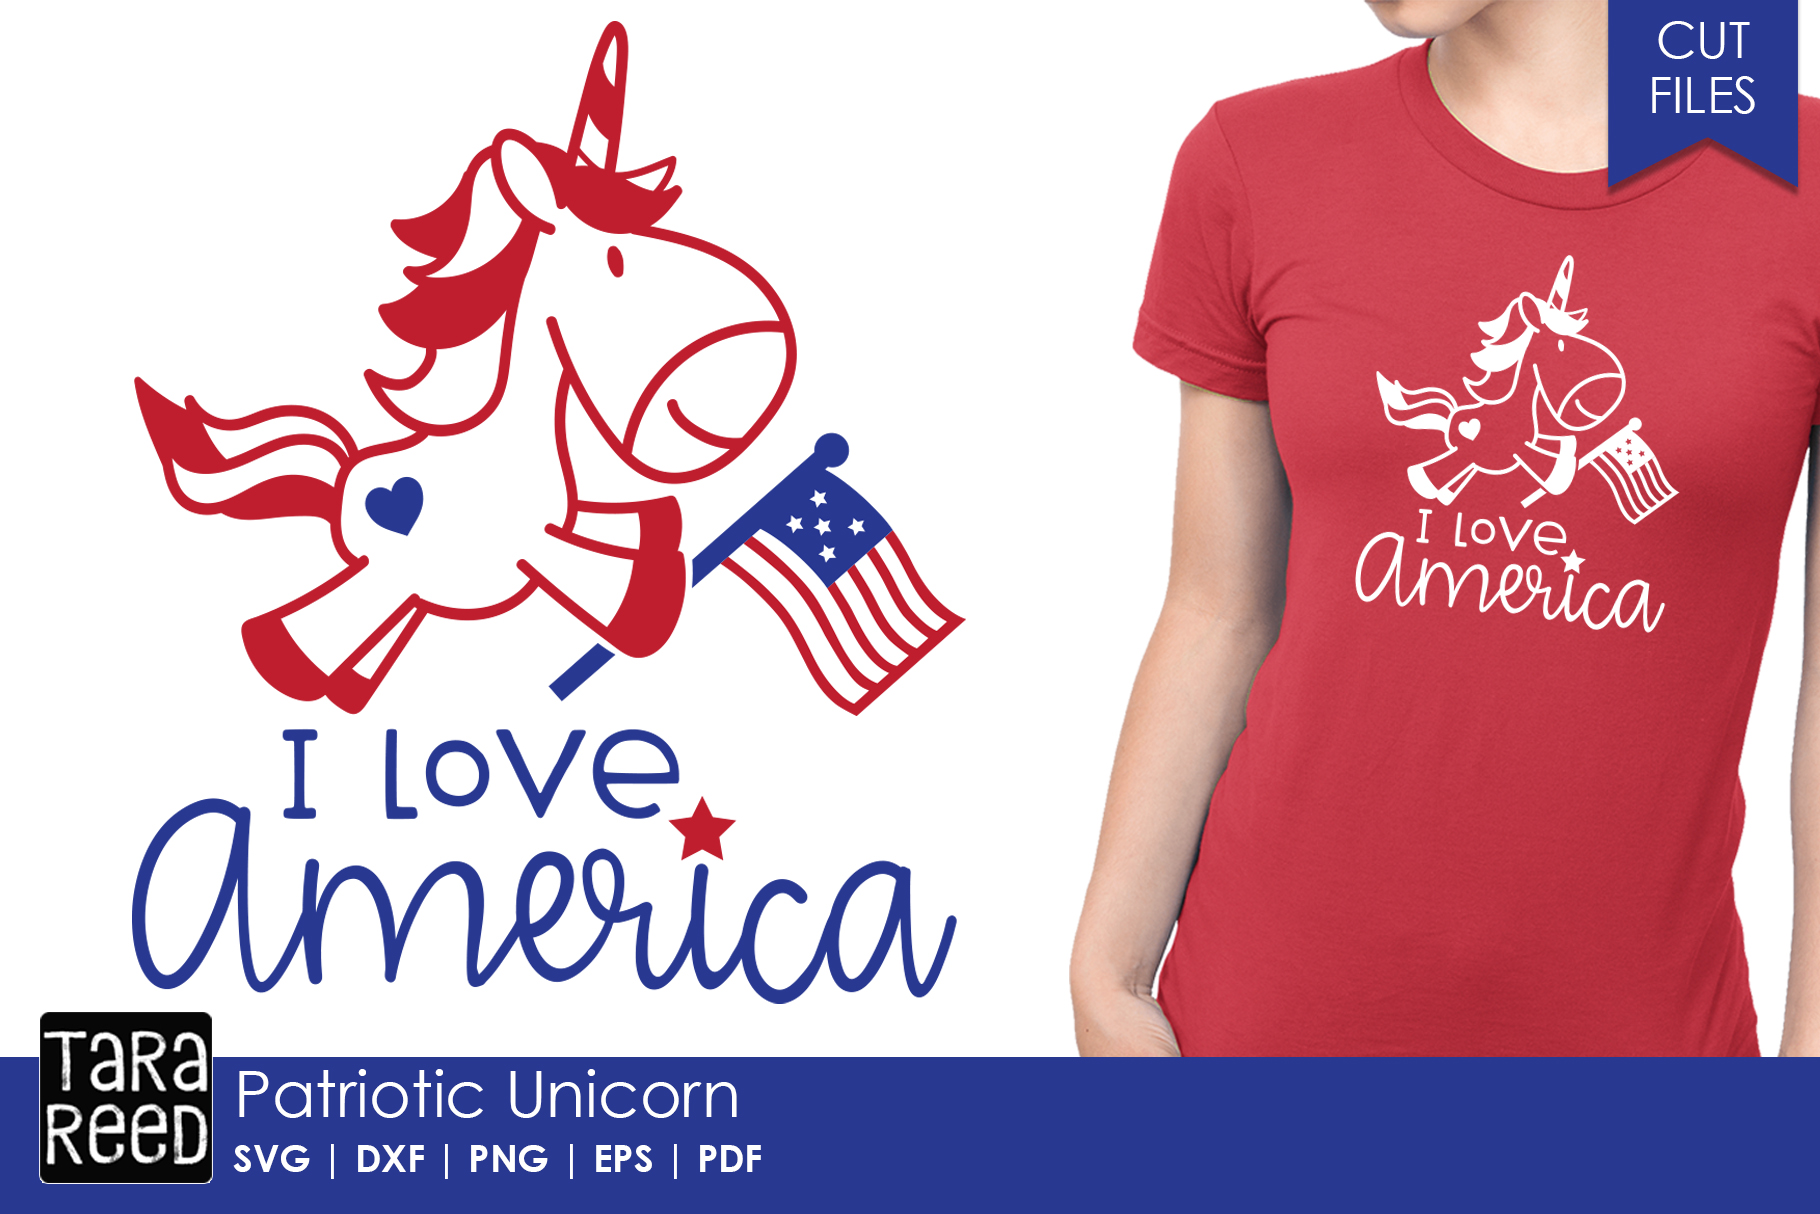 Patriotic Unicorn - 4th of July SVG and Cut Files example image 1